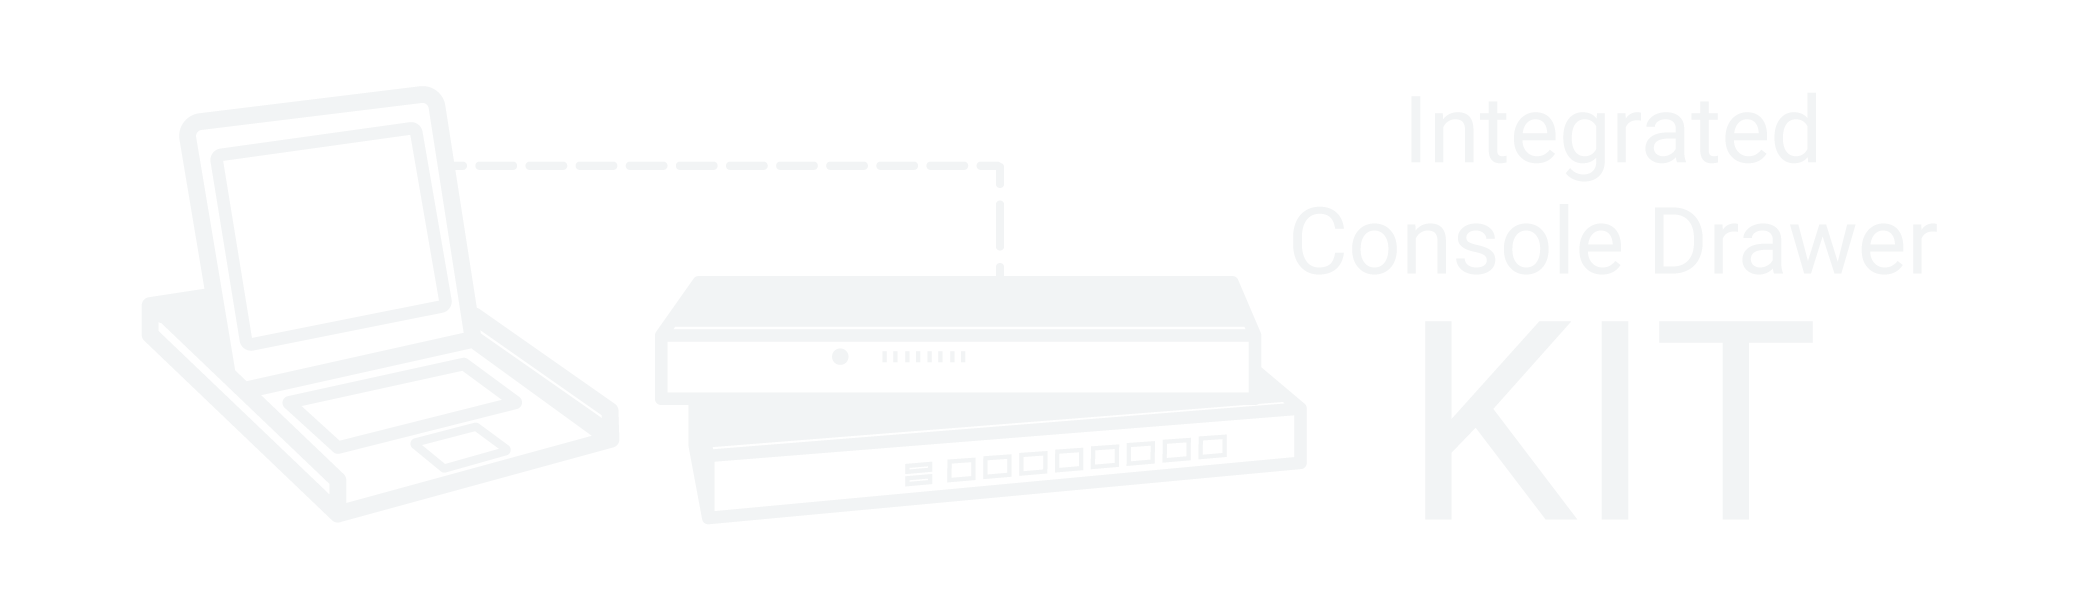 Rackmount Drawer with Integrated KVM